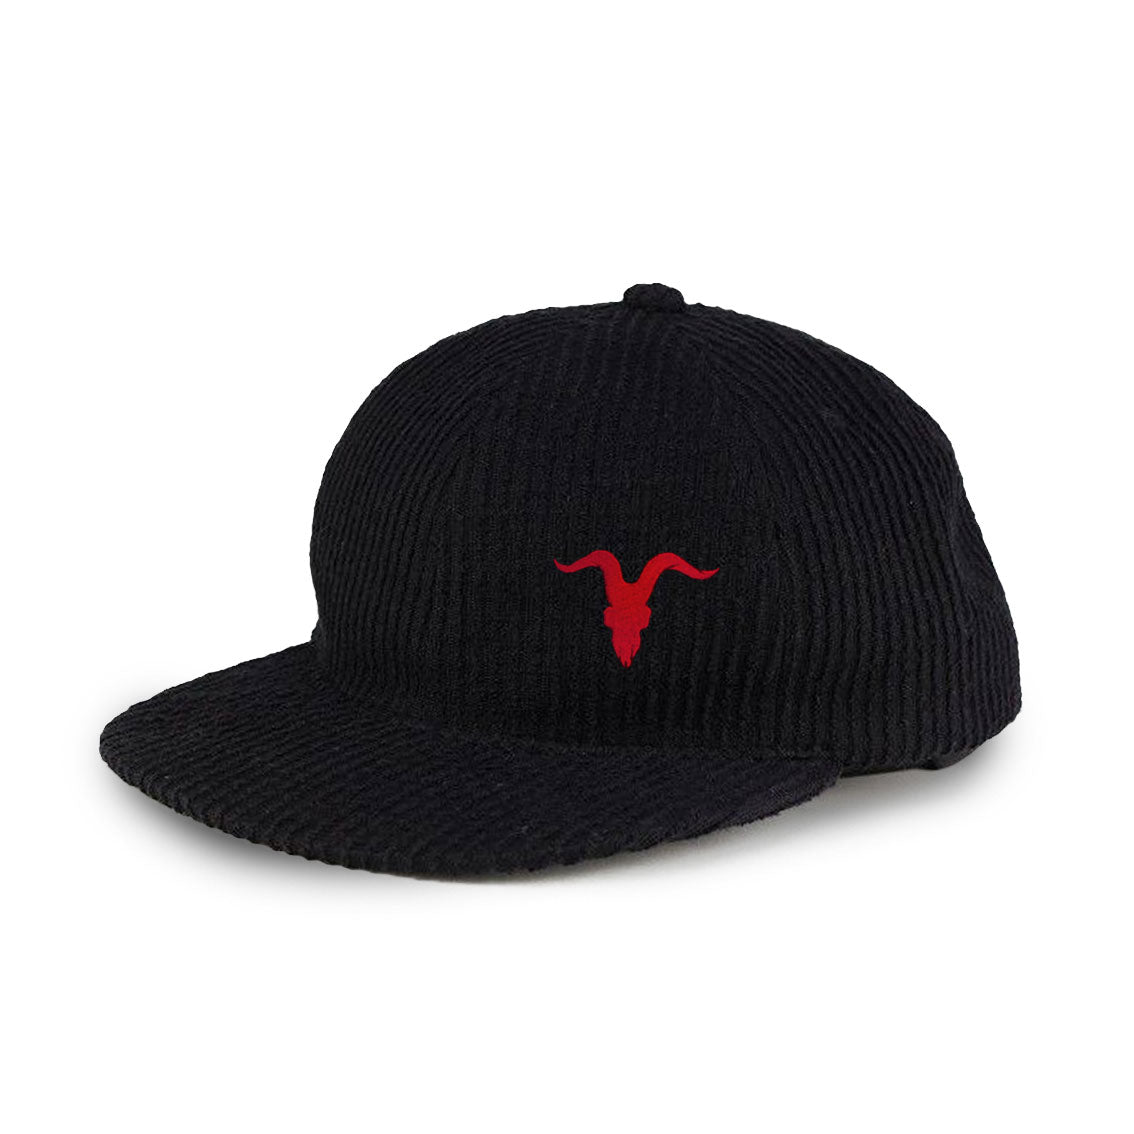 Ignite Premium Collection Corduroy Cap with Red Logo on Side